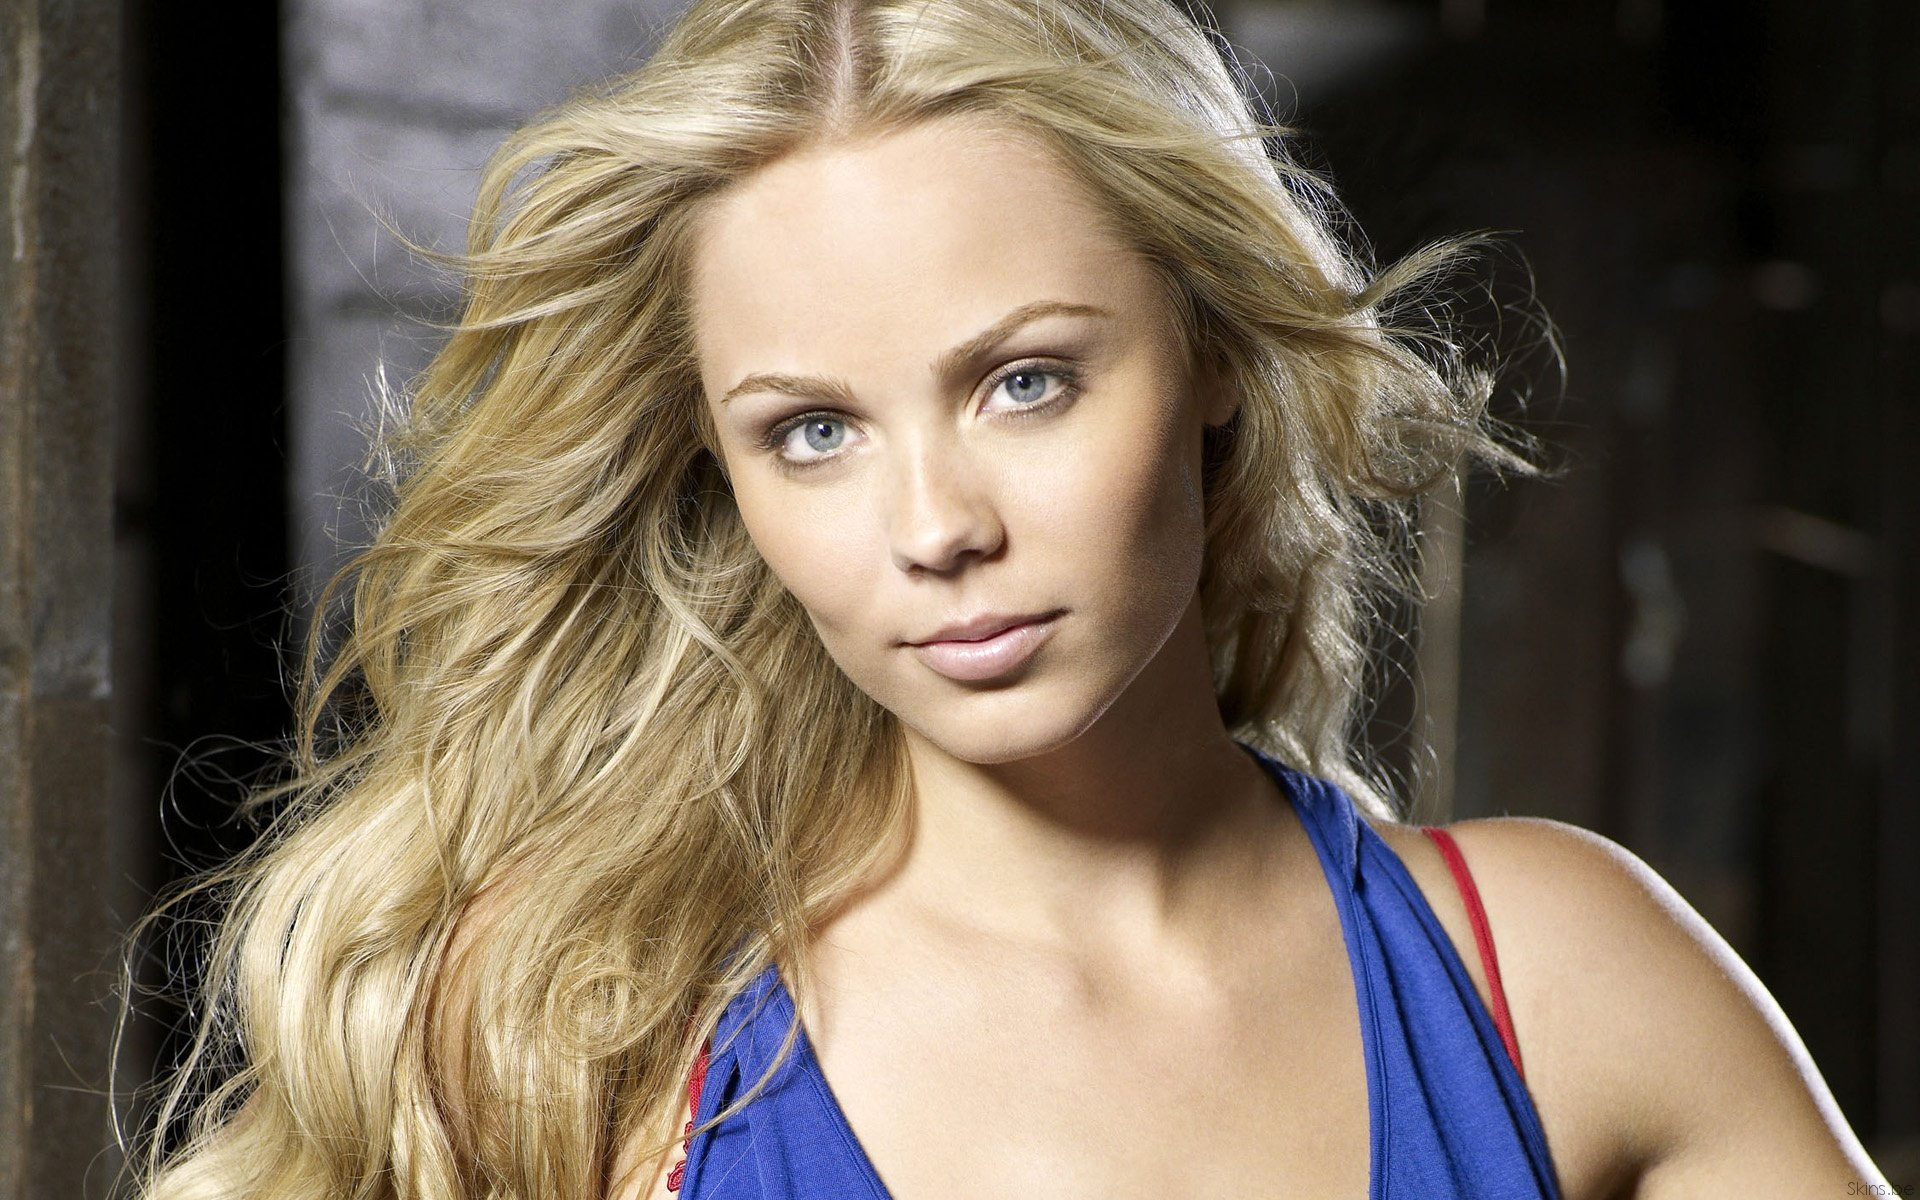 Awesome Laura Vandervoort free wallpaper ID:210311 for hd 1920x1200 desktop